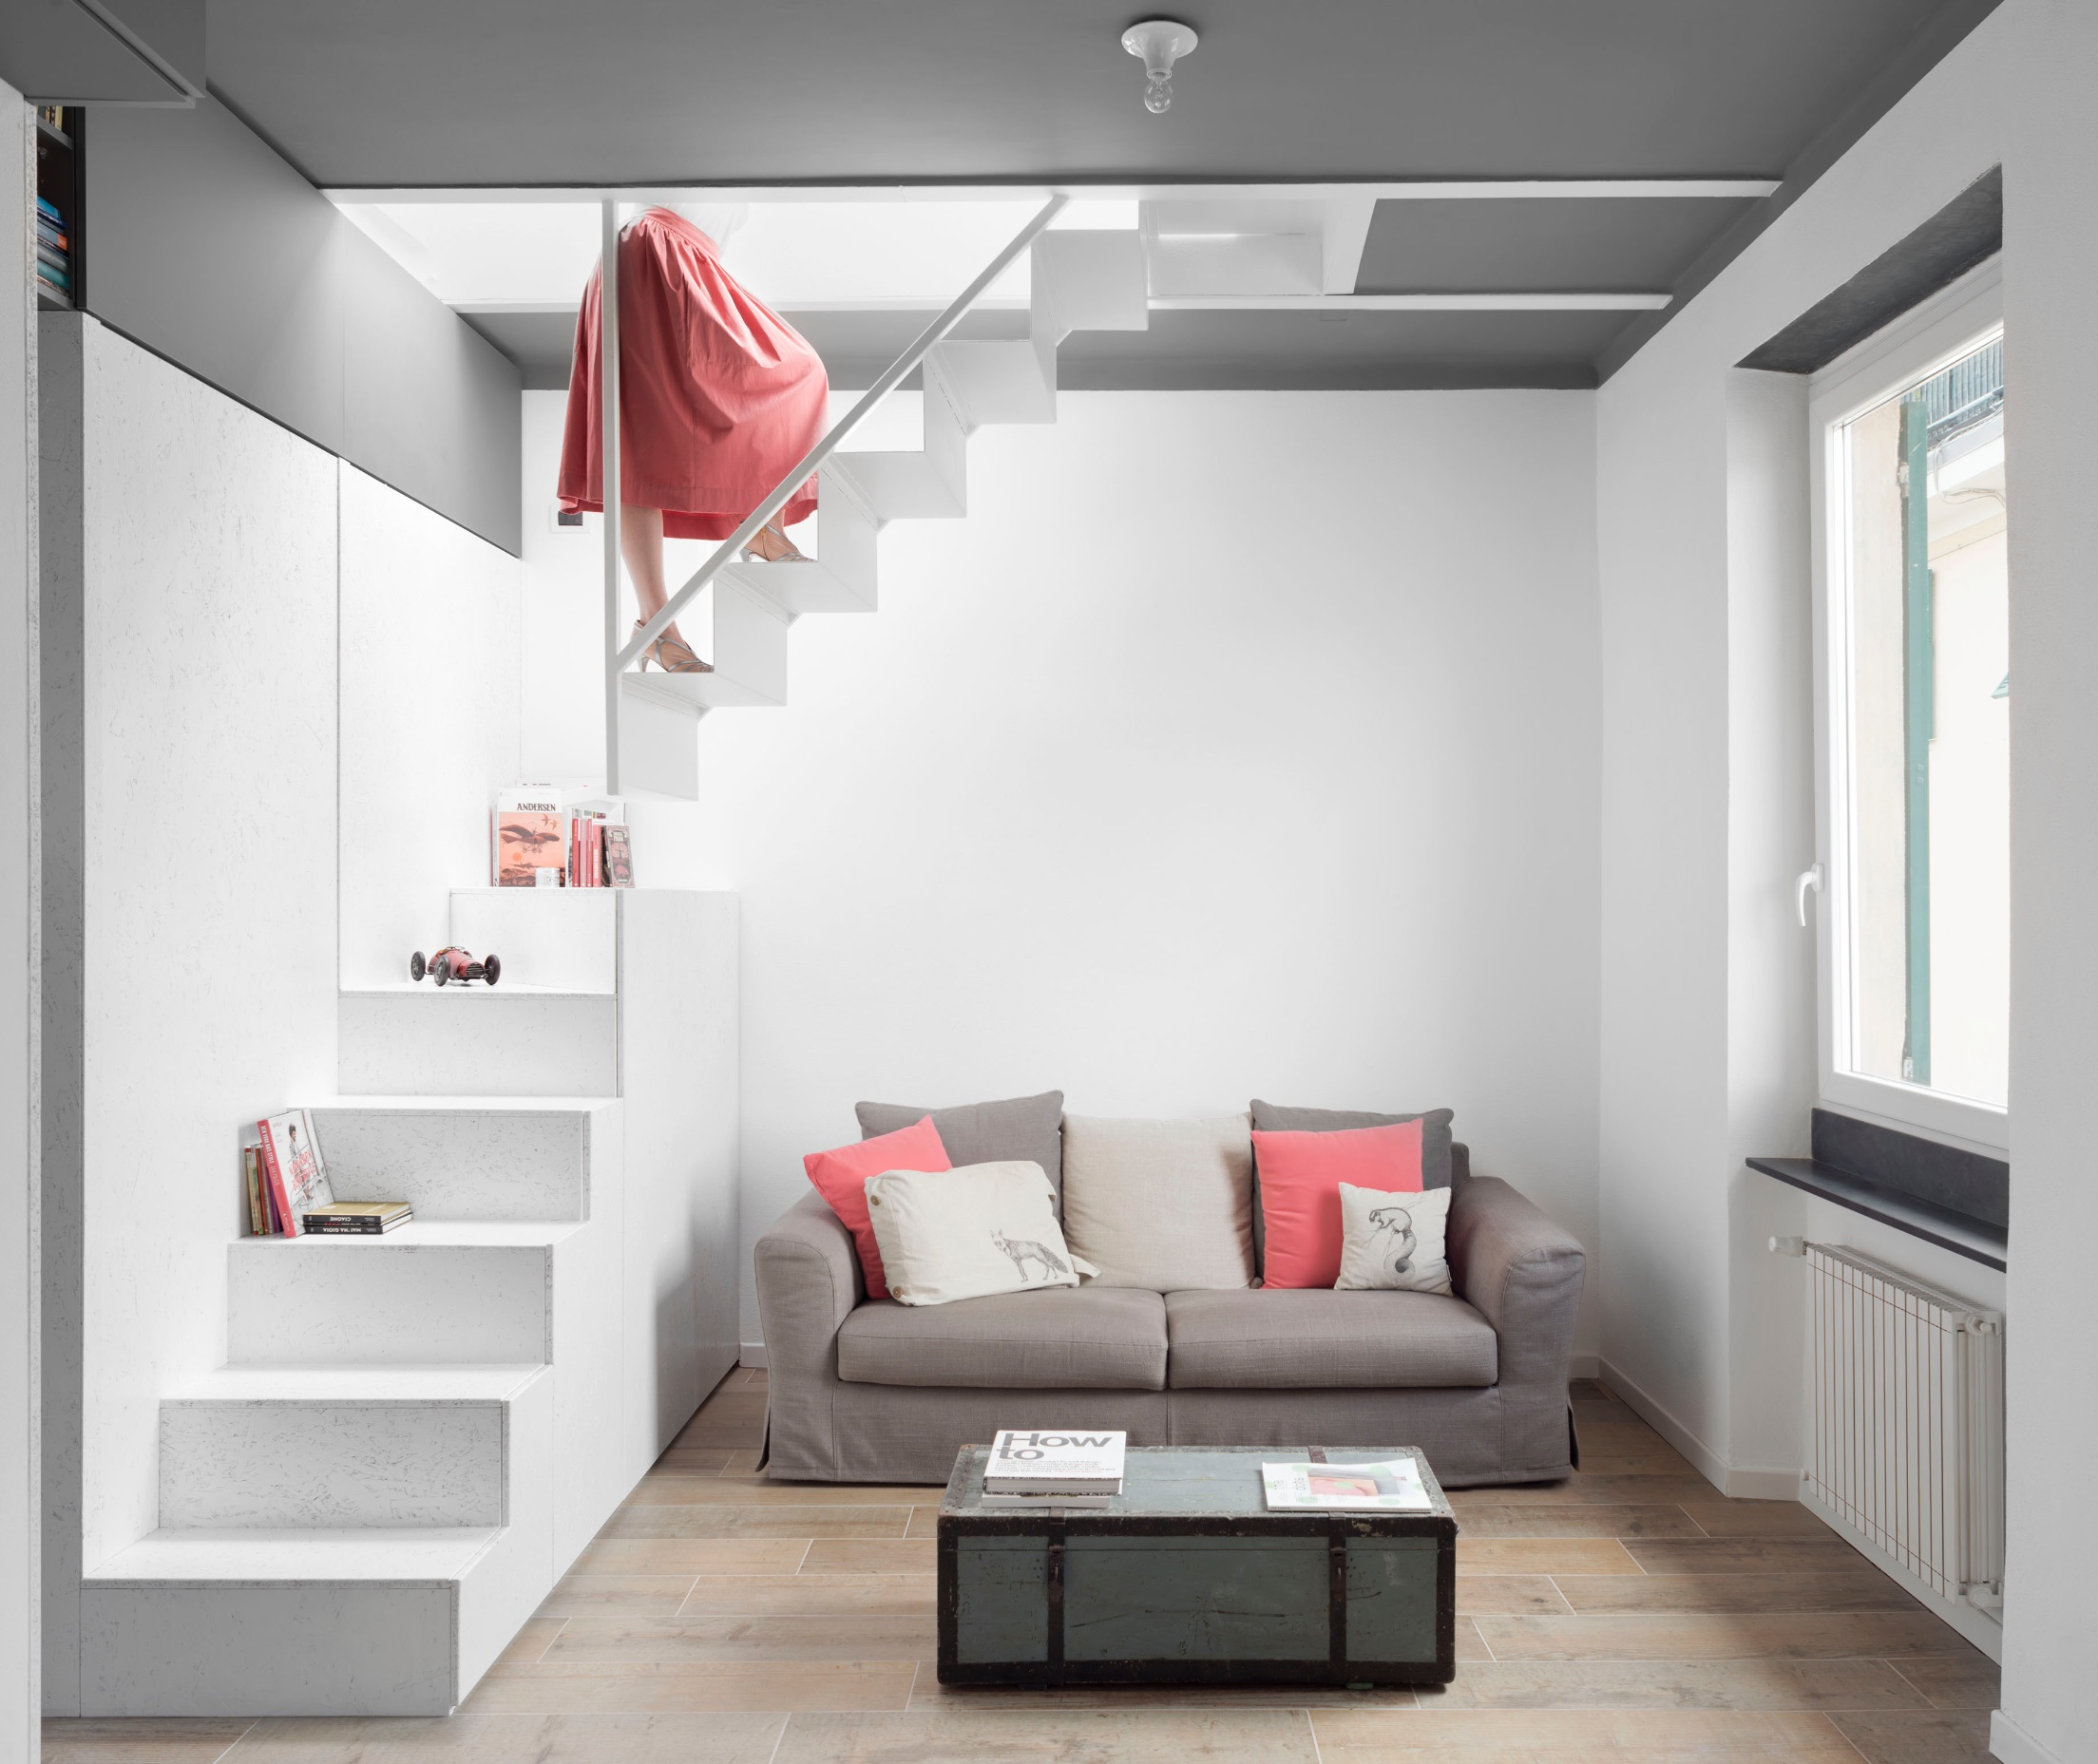 6_Gosplan Architects_Cranes Attic_Inspirationist